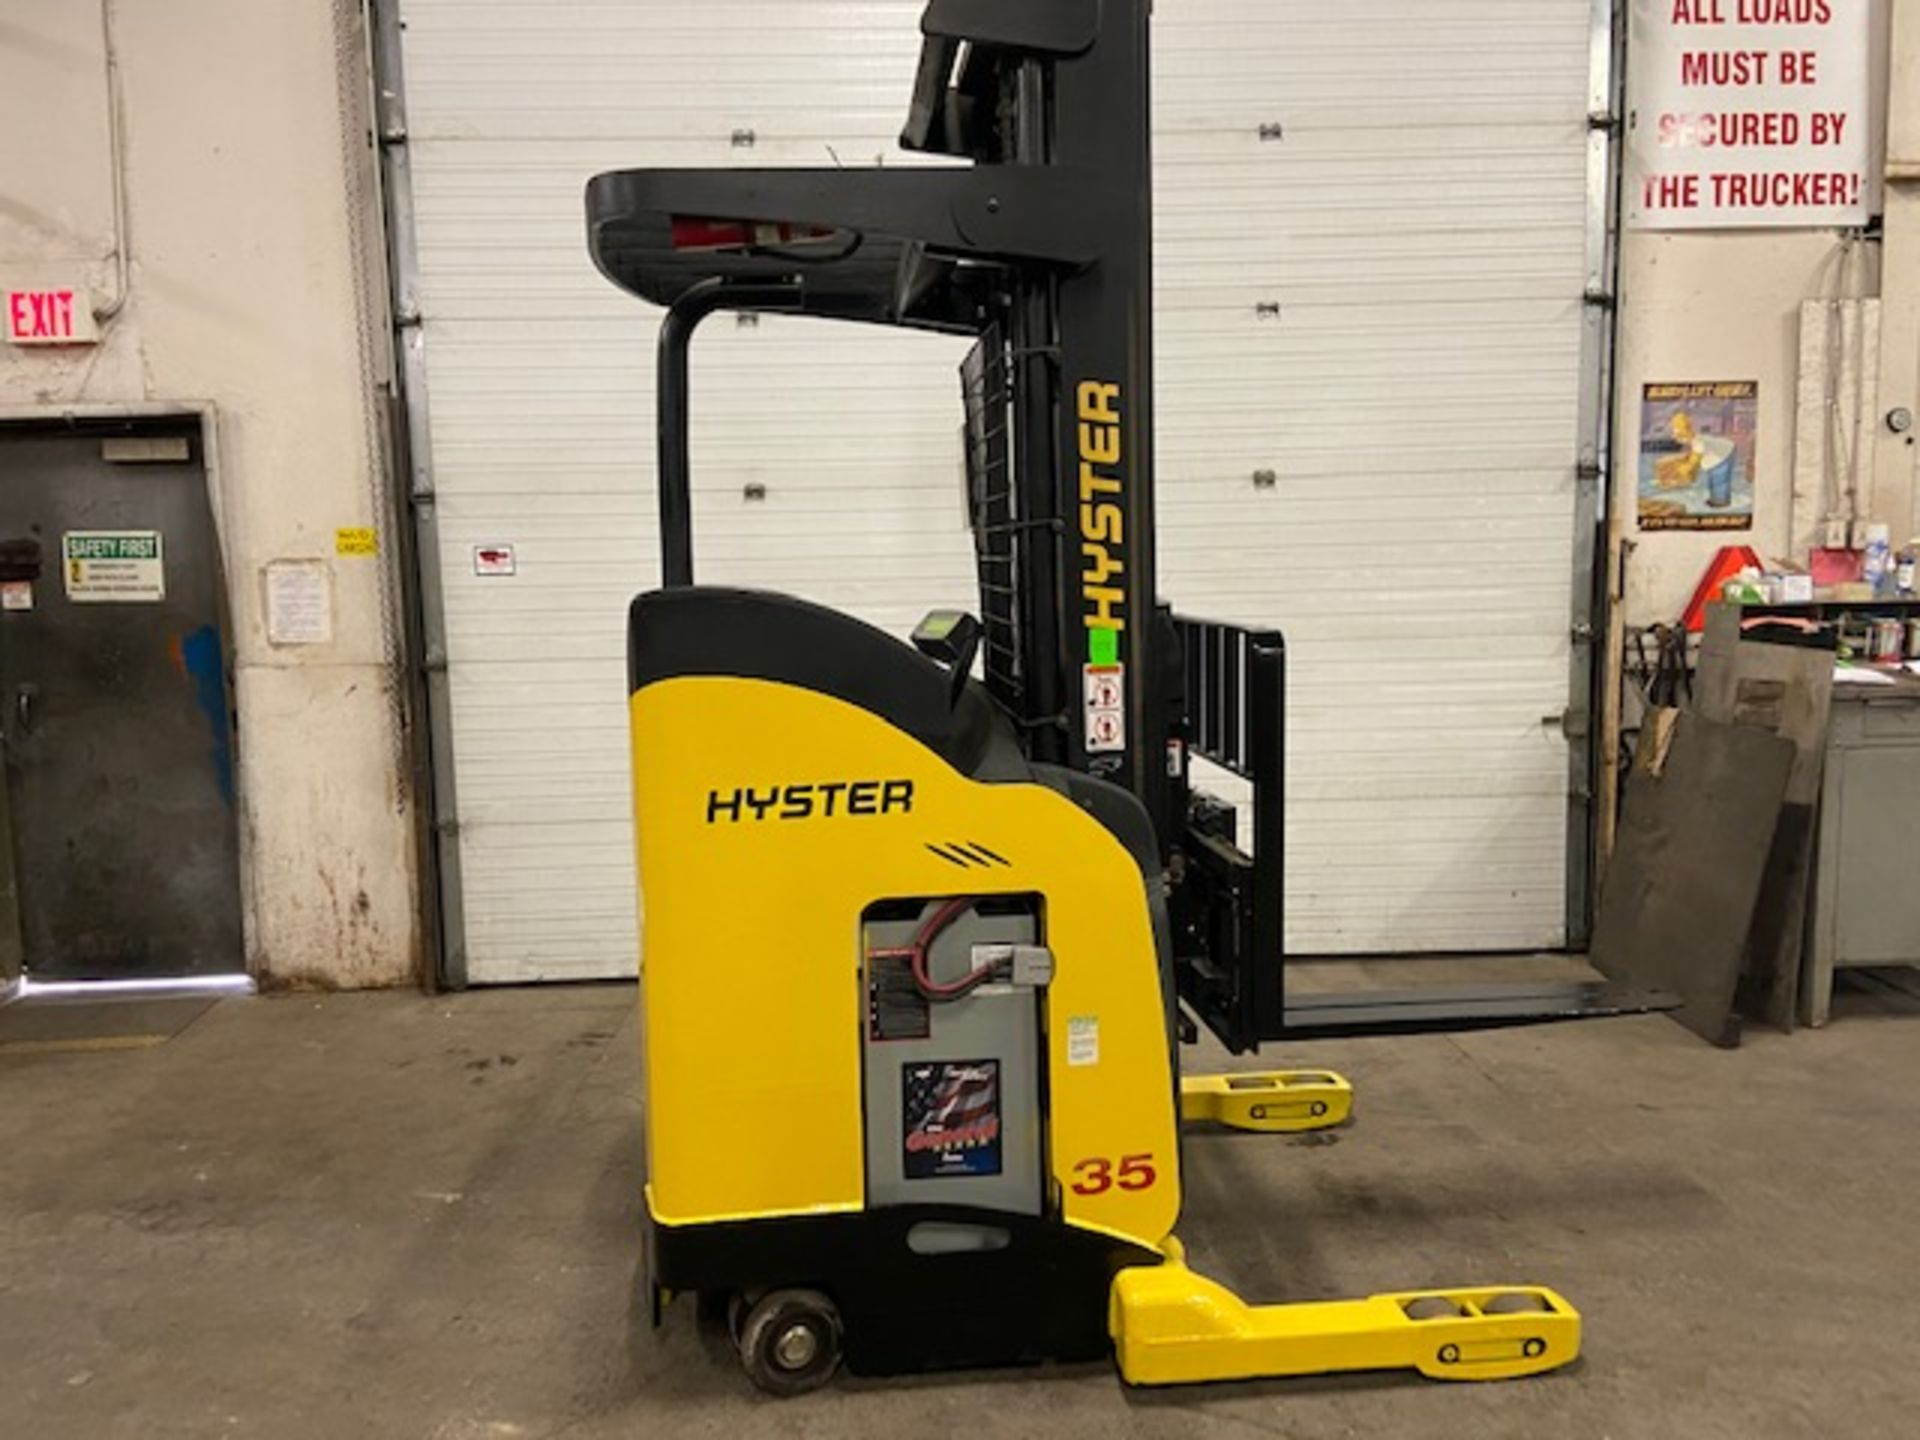 FREE CUSTOMS - Hyster Reach Truck Pallet Lifter REACH TRUCK electric 3500lbs with sideshift 3-